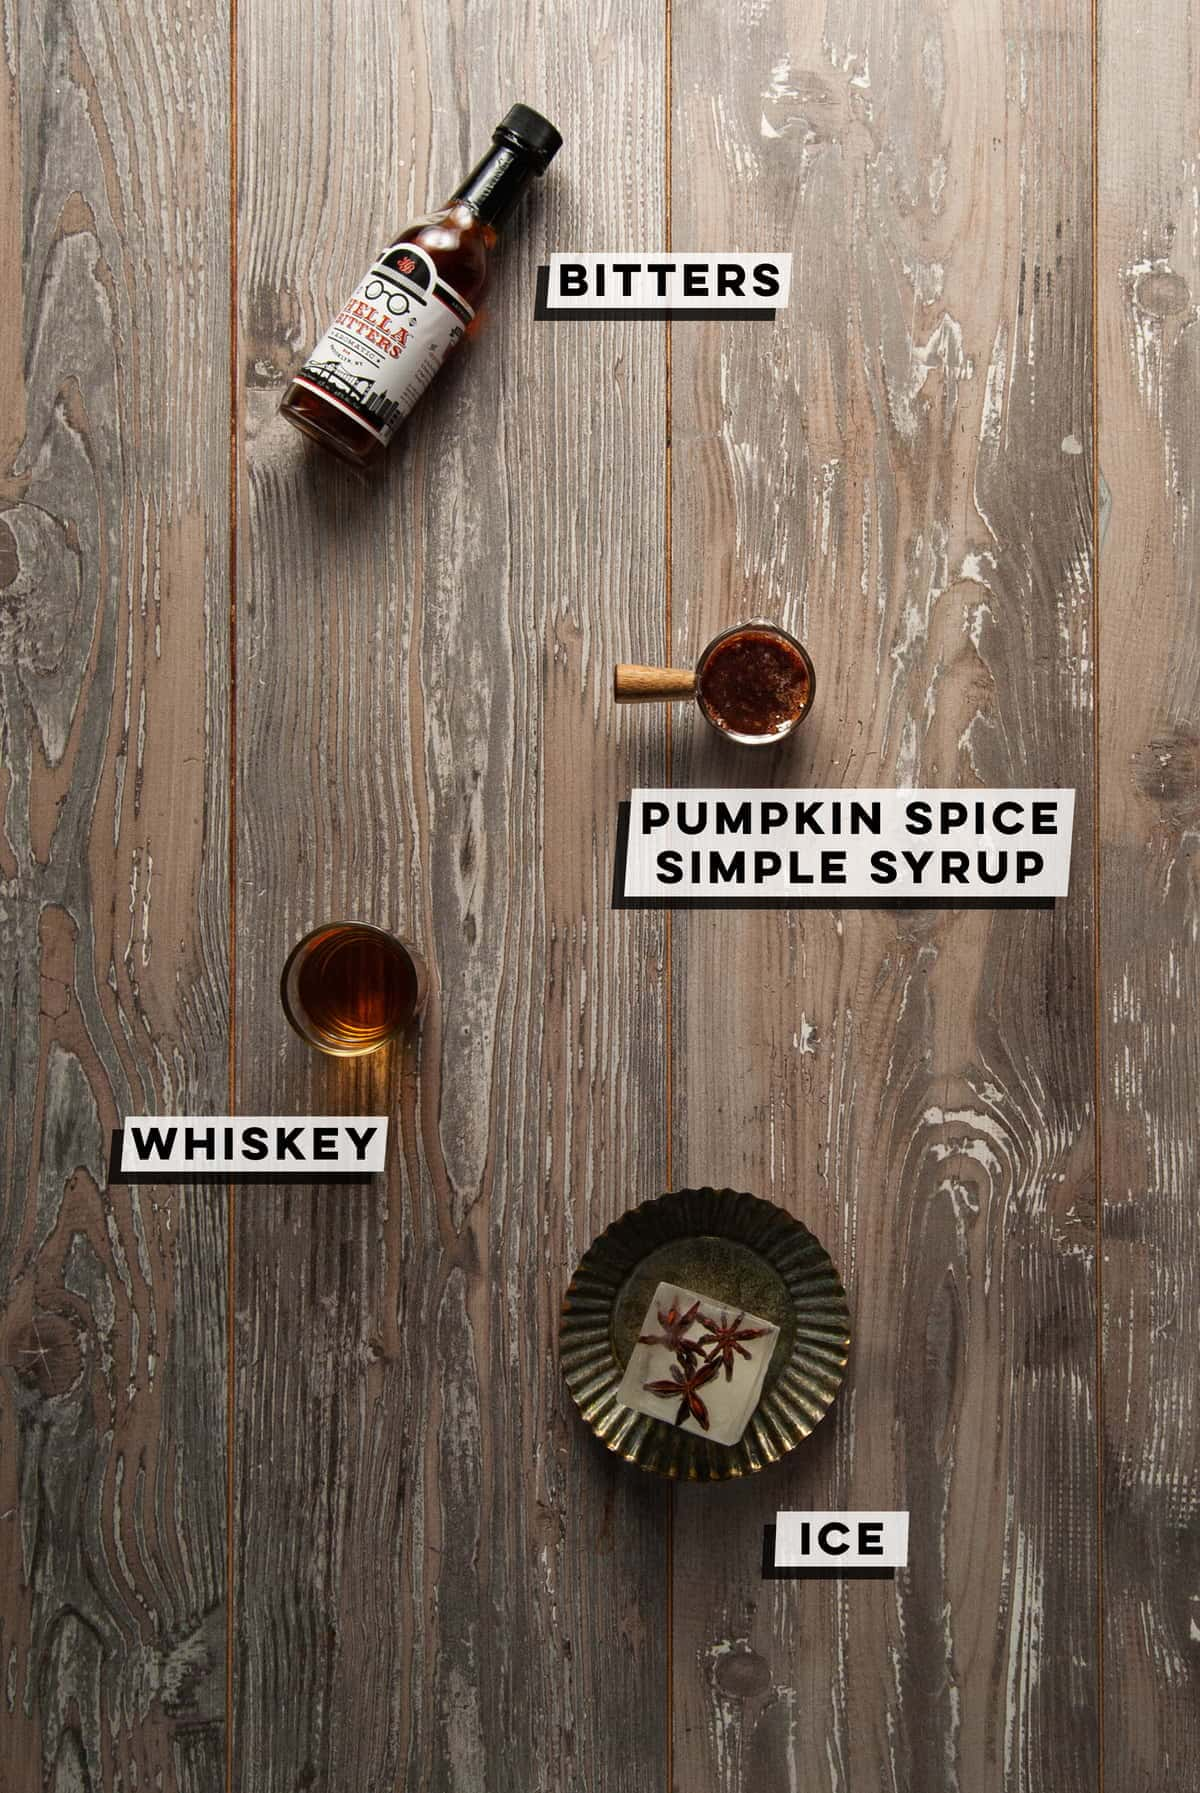 aromatic bitters, pumpkin spice simple syrup, whiskey, ice